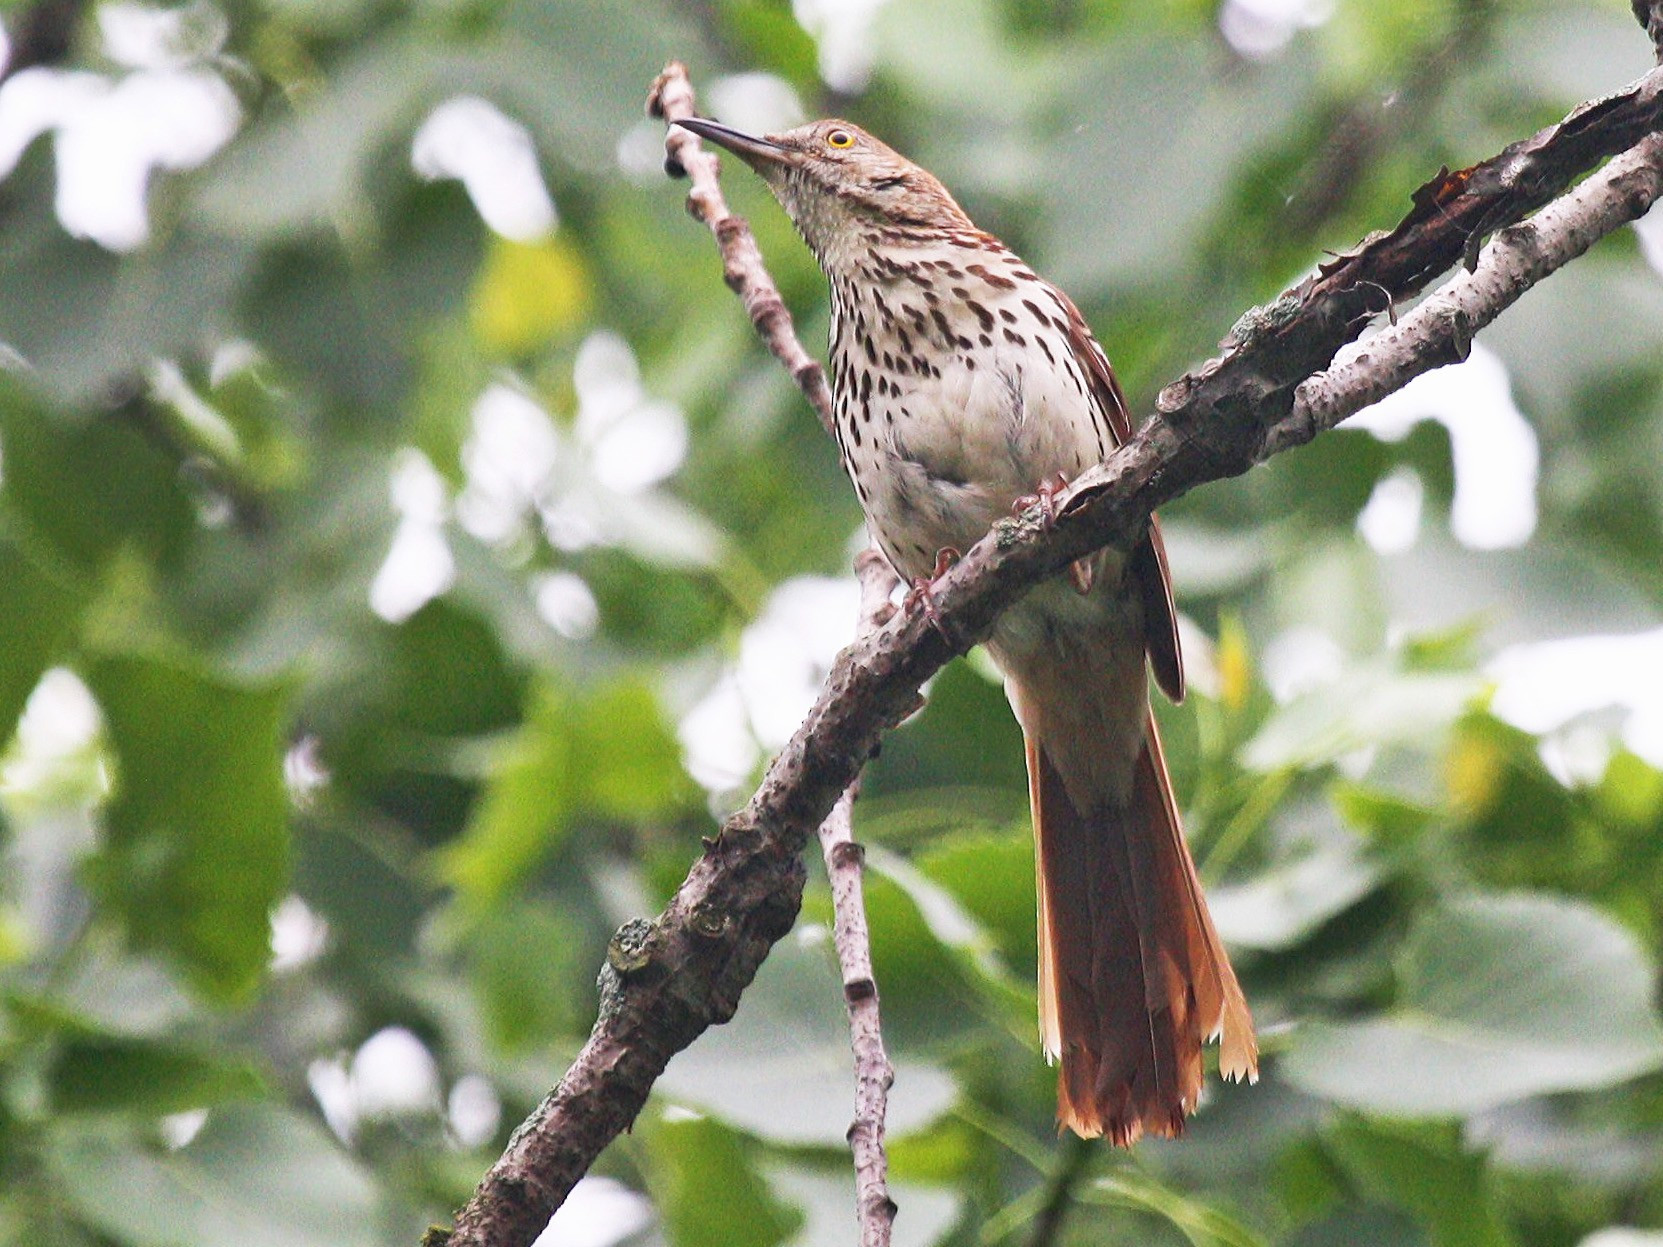 Brown Thrasher - Jon Isacoff